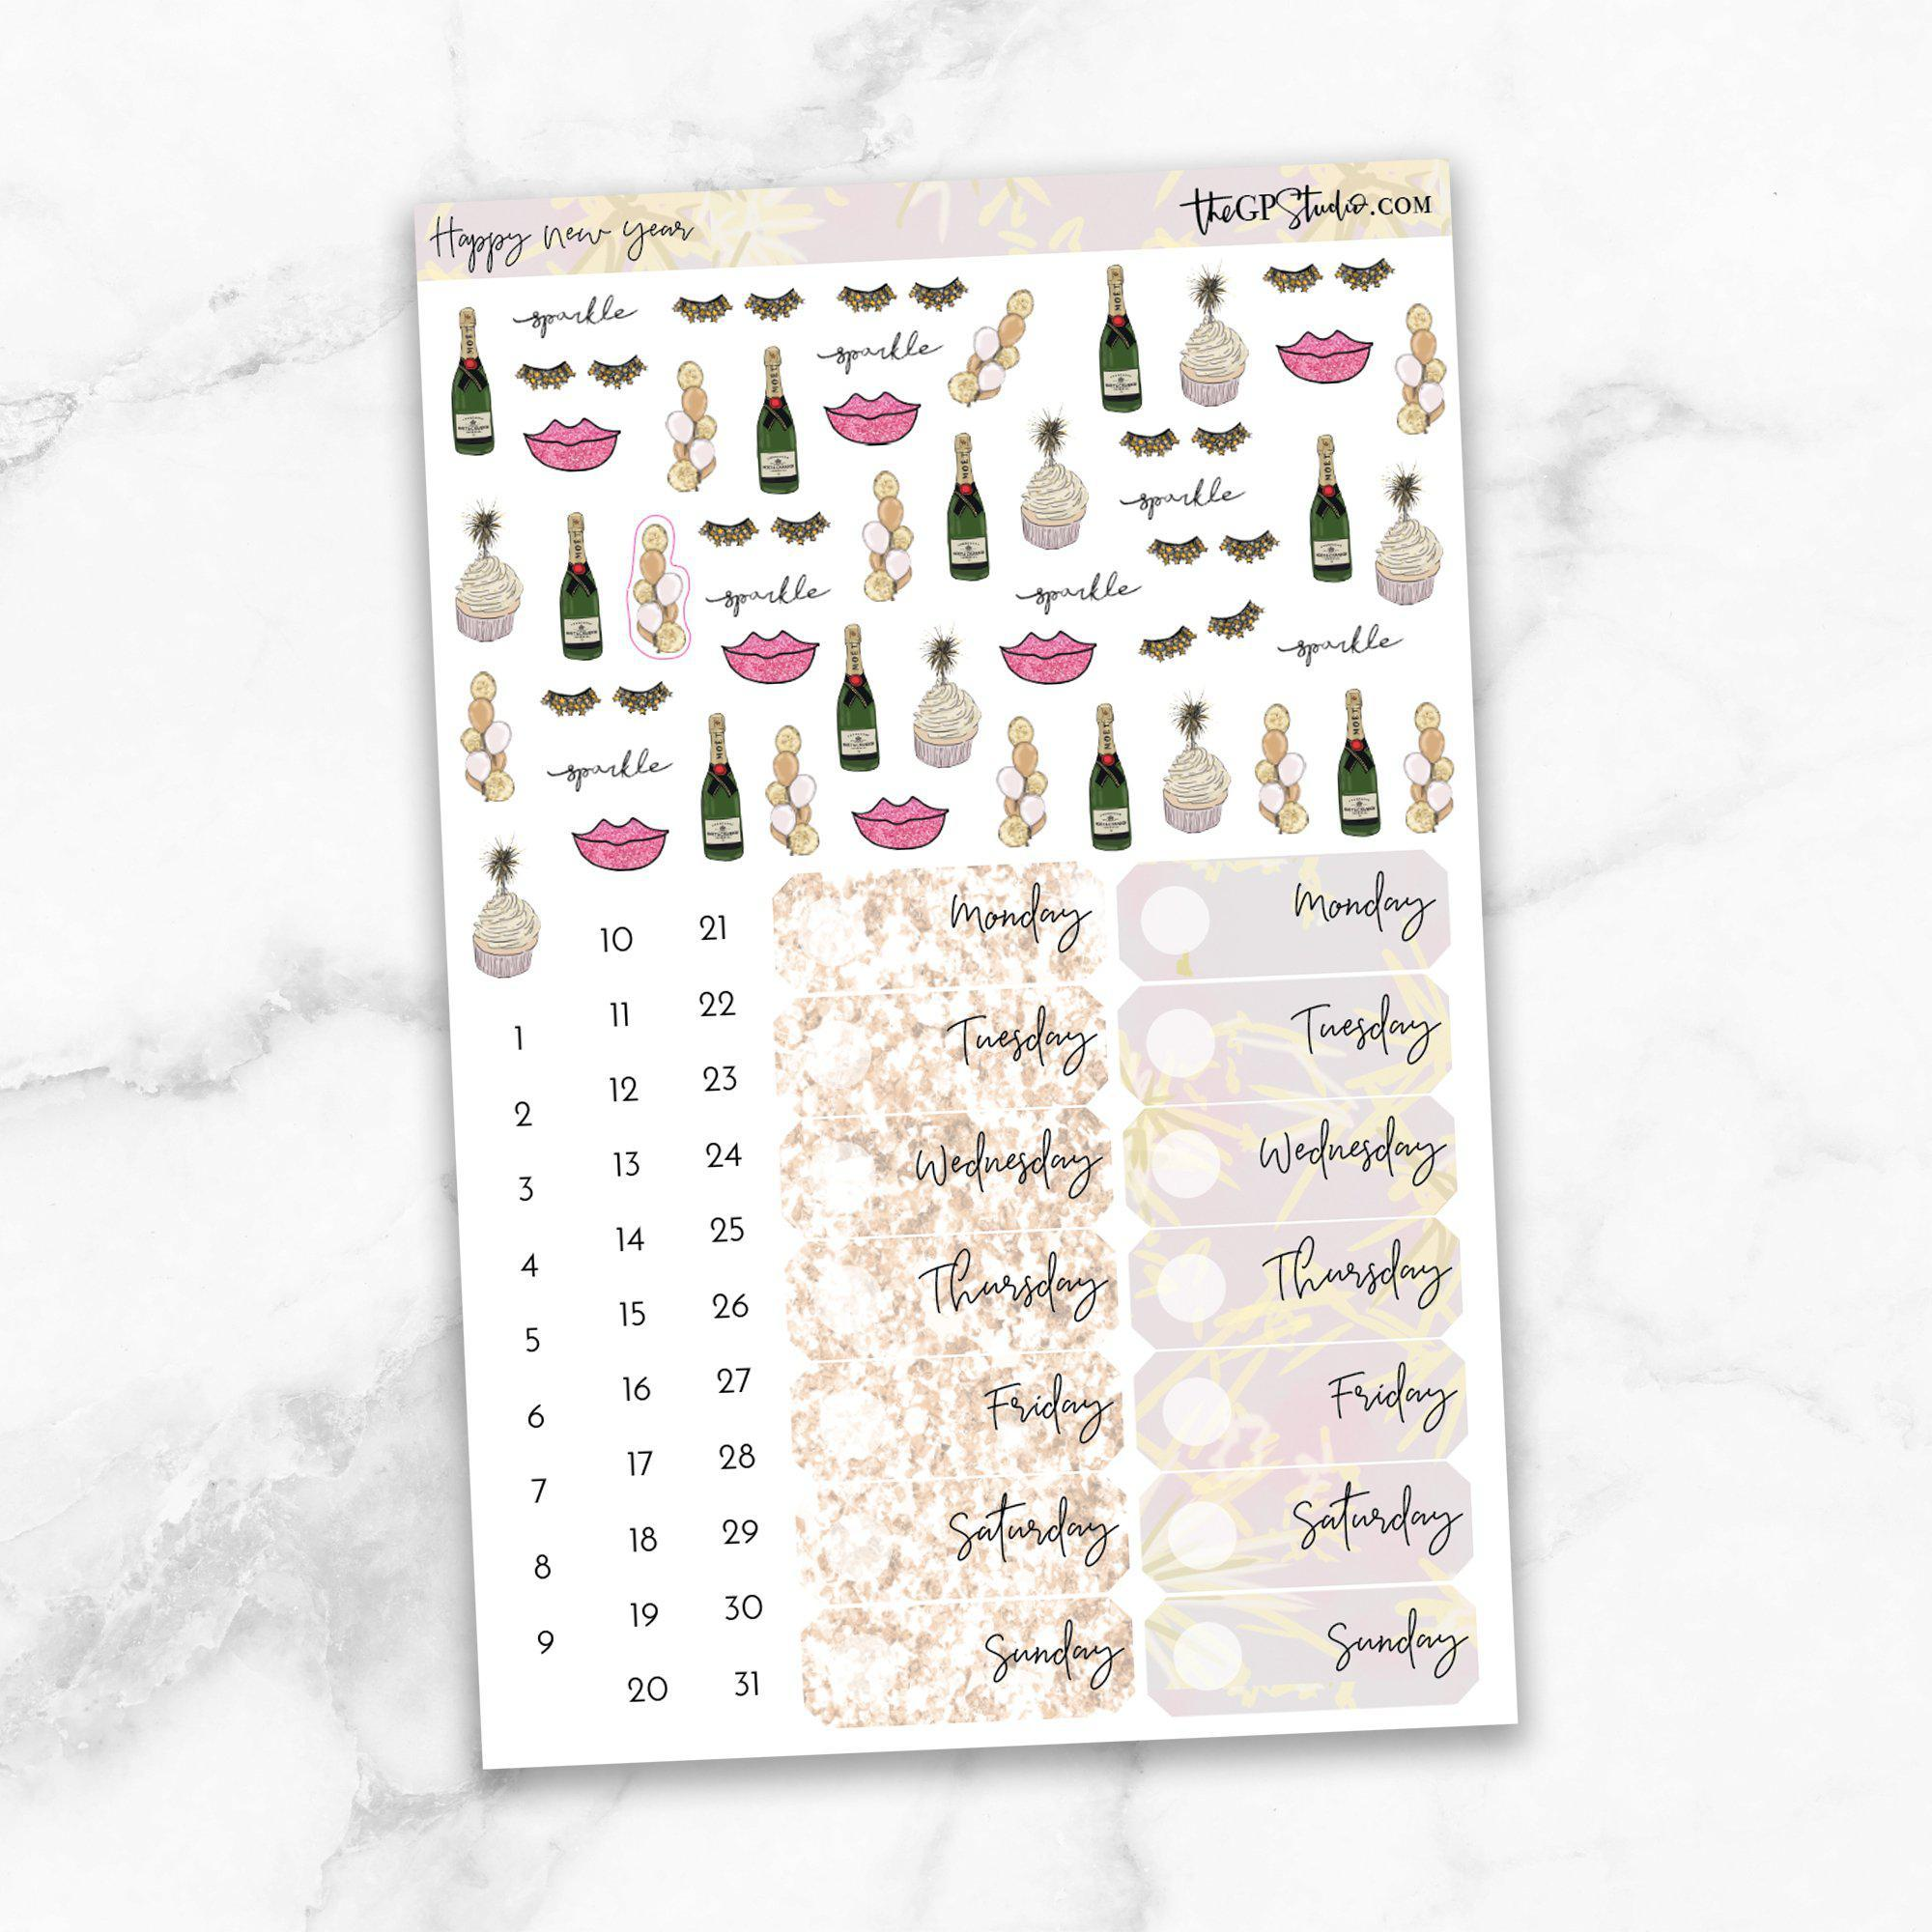 HAPPY NEW YEAR Deco & Date Cover Stickers-The GP Studio